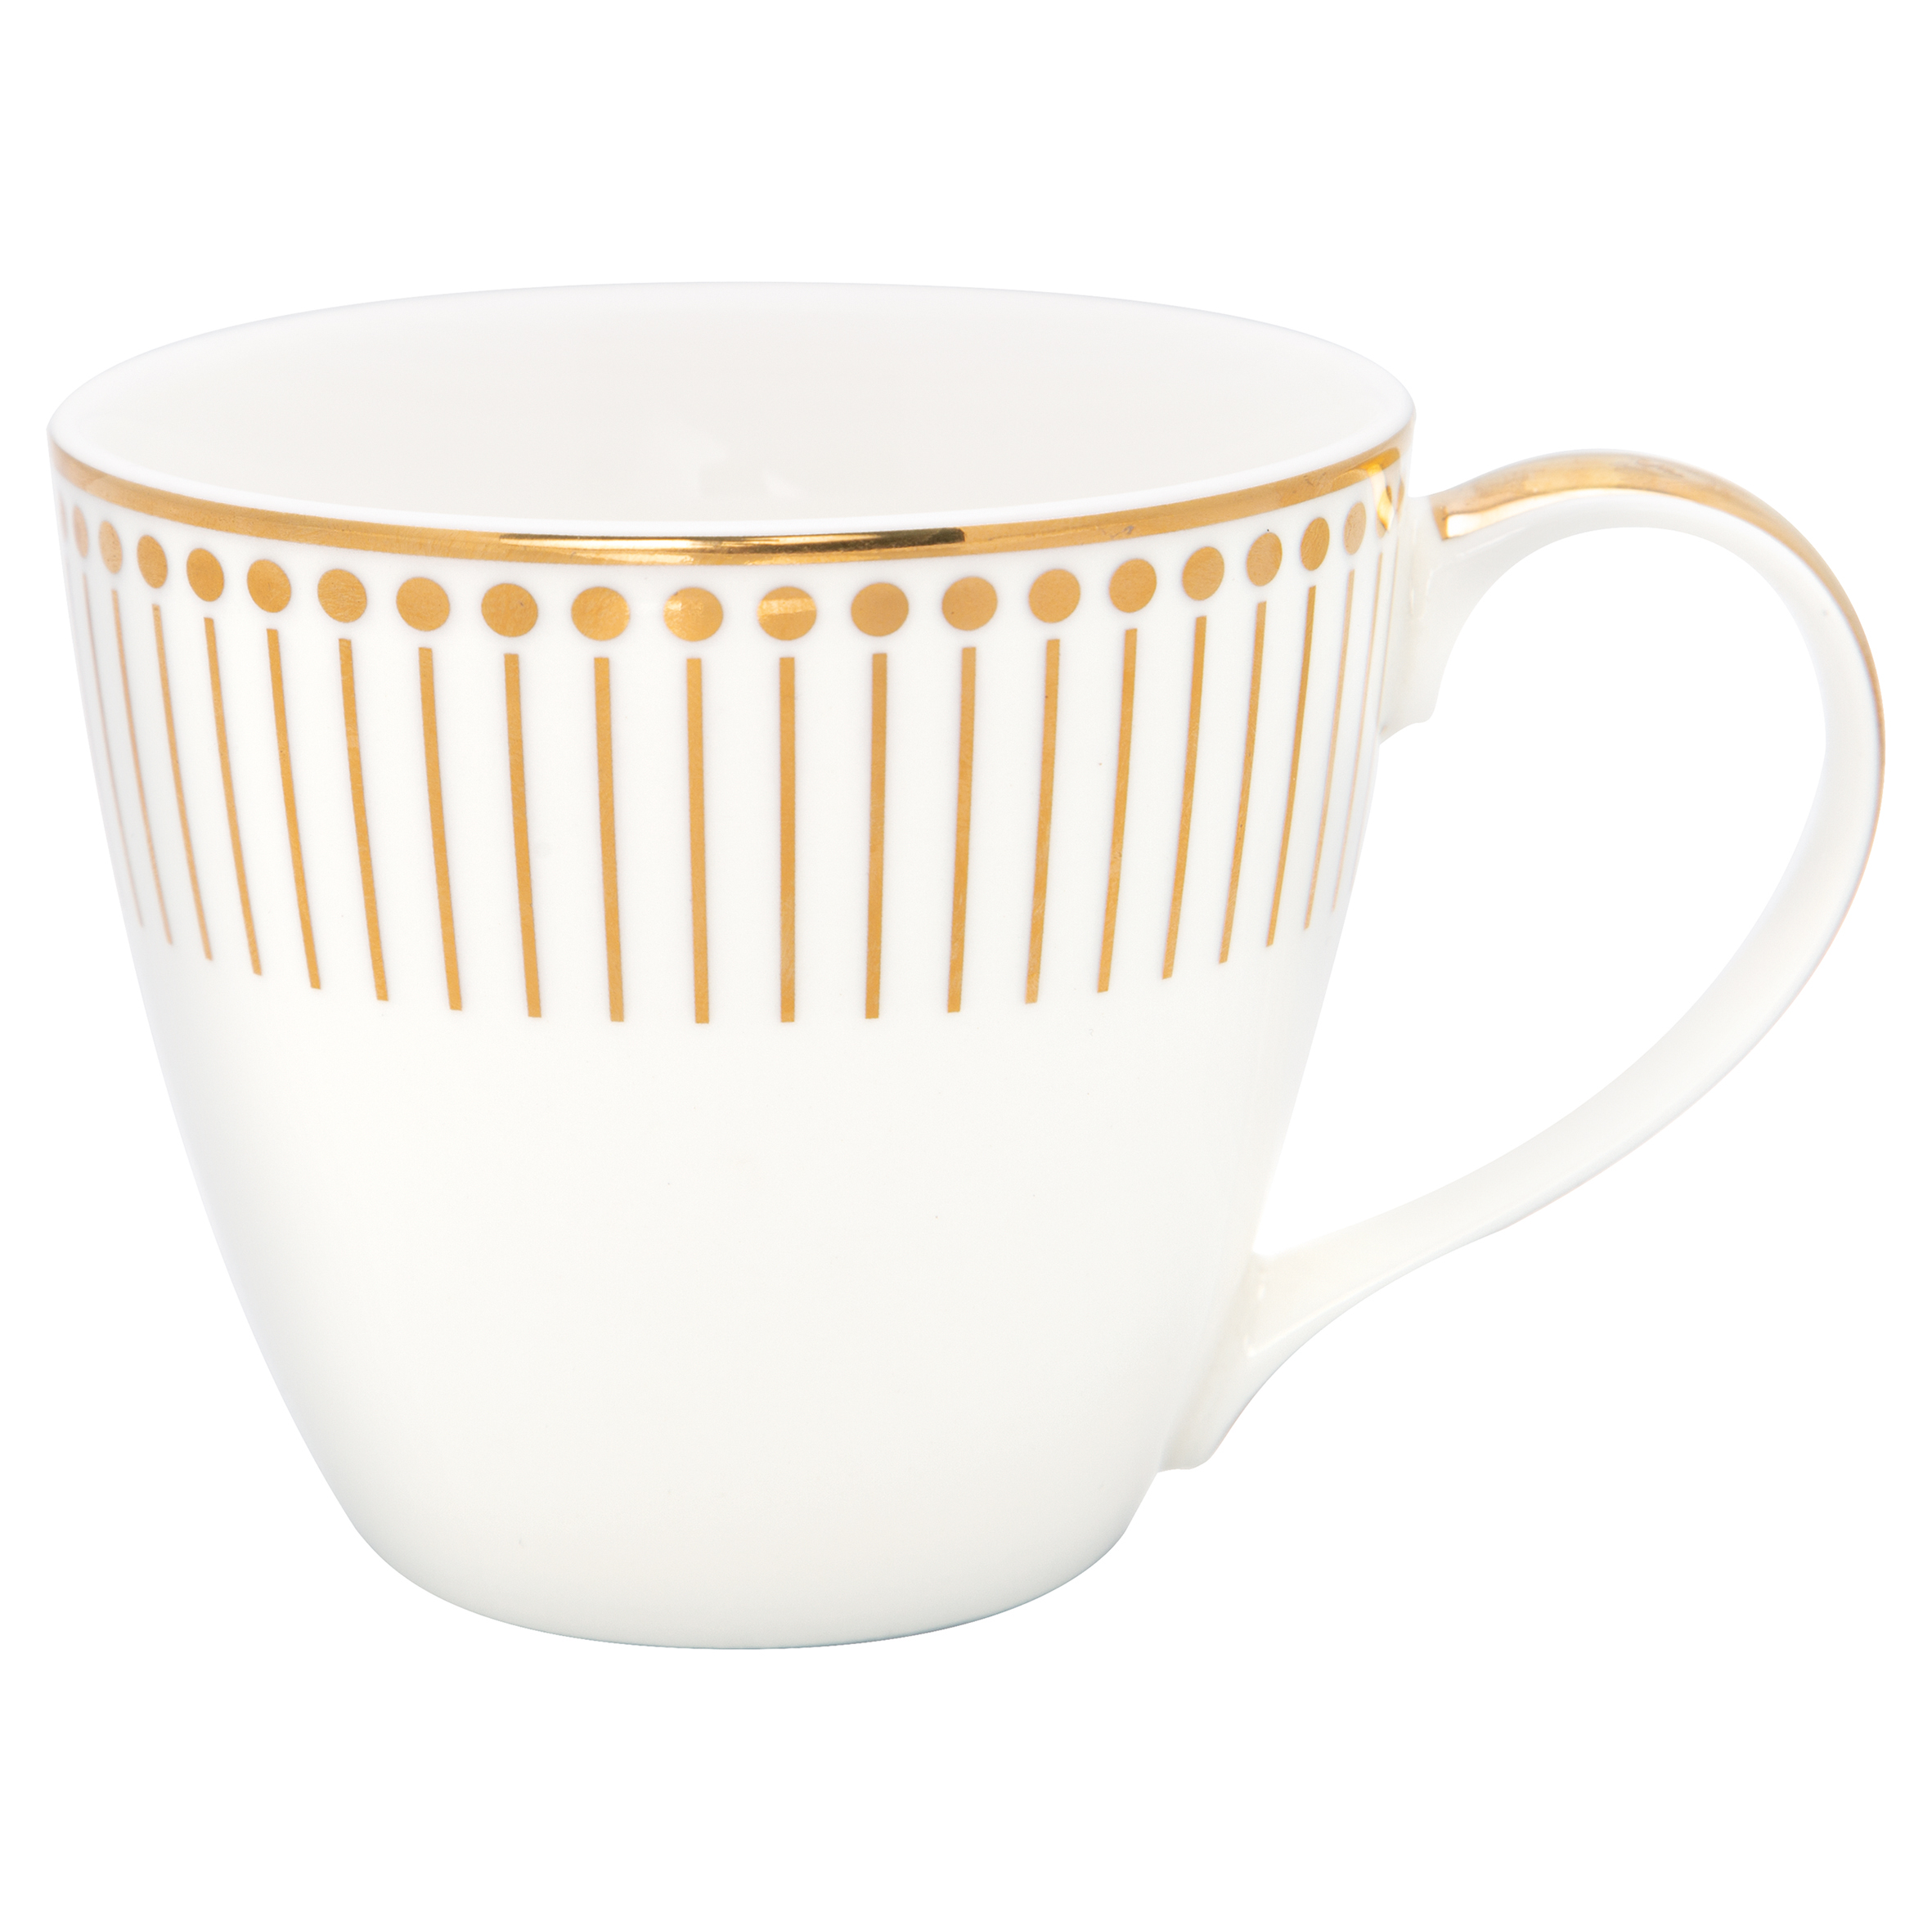 Becher mit Henkel - Dawn gold - Greengate